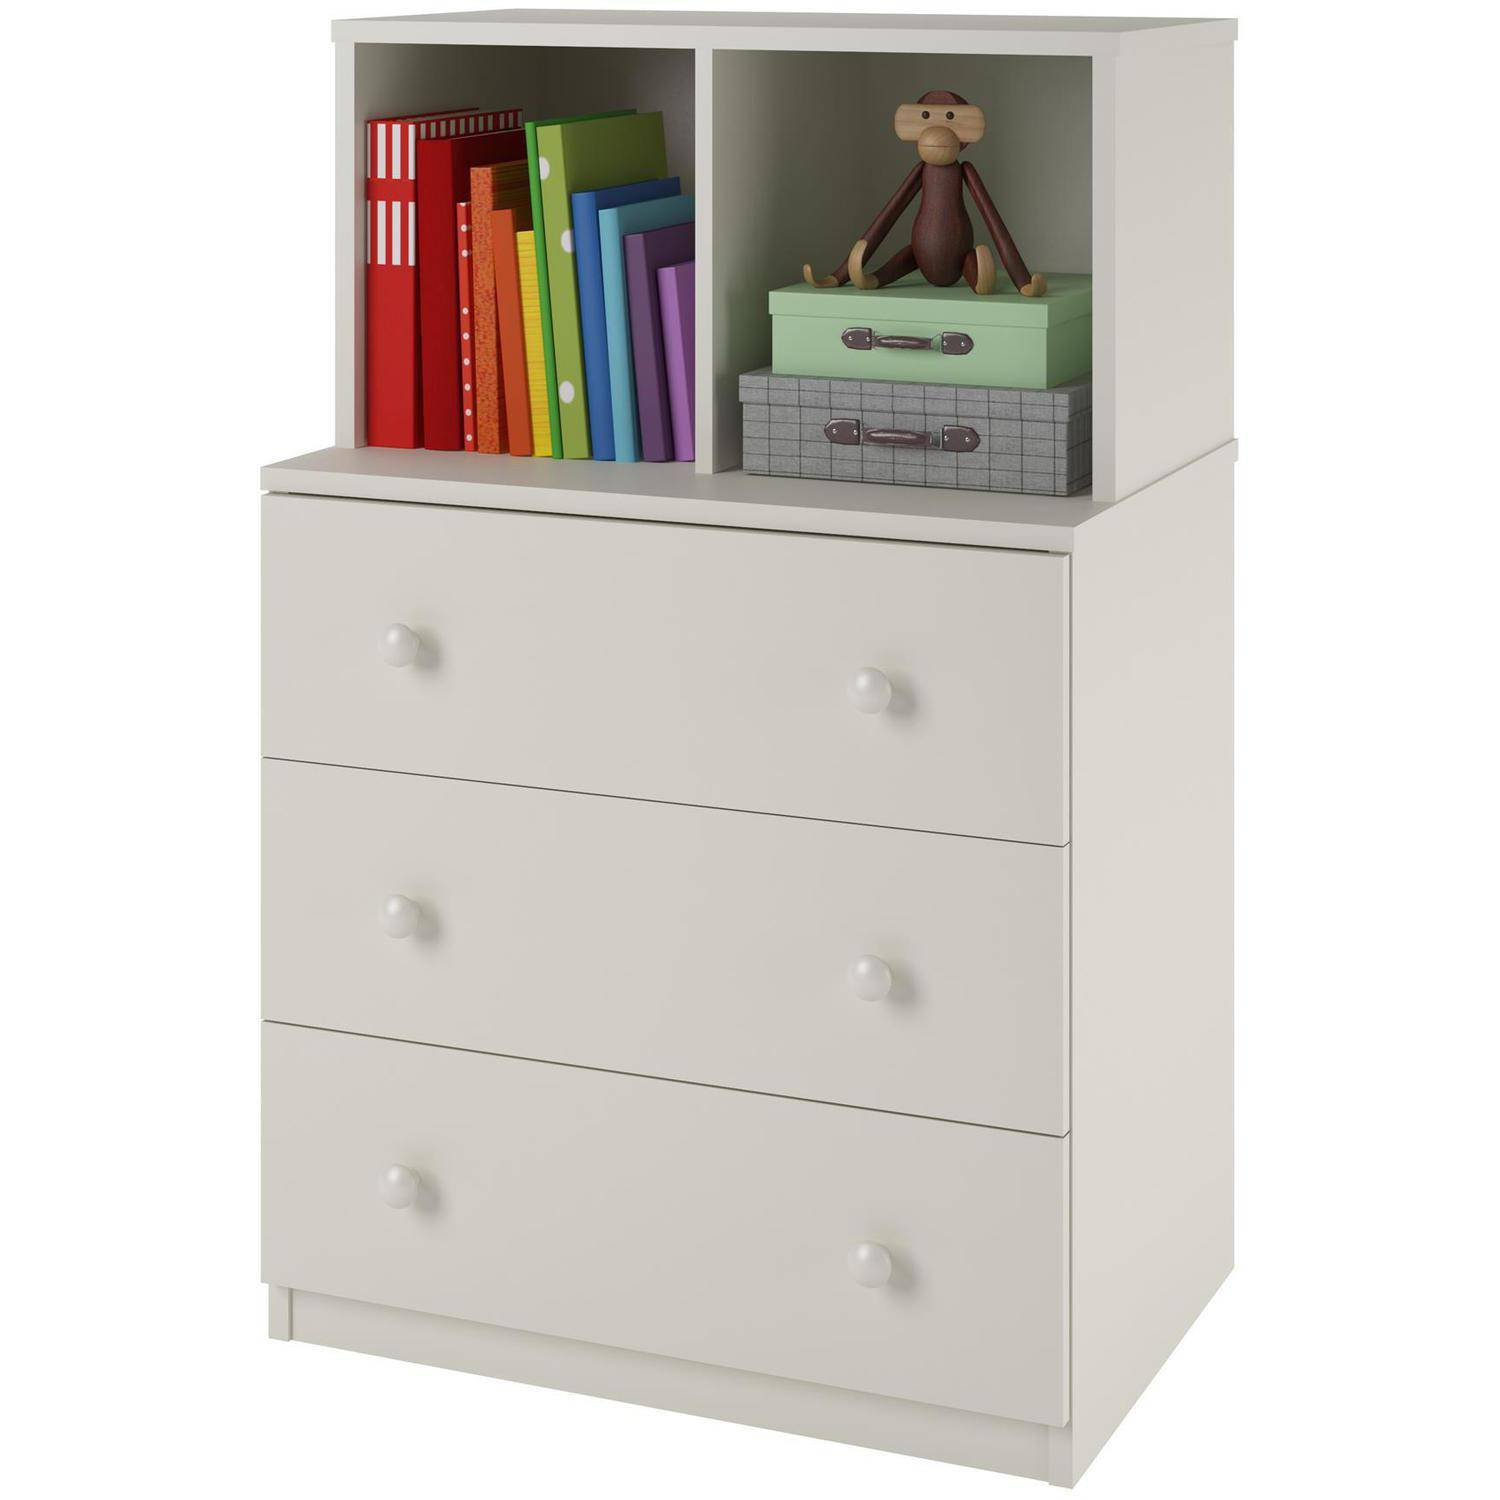 3-Drawer Dresser 2-Cubbies White Wooden Clothes Toys Books Decor Display Storage Cabinet Organizer Furniture-Home Office Dorm Apartment Bedroom Dimensions: 23.68 x 15.68 x 36.68 Inches